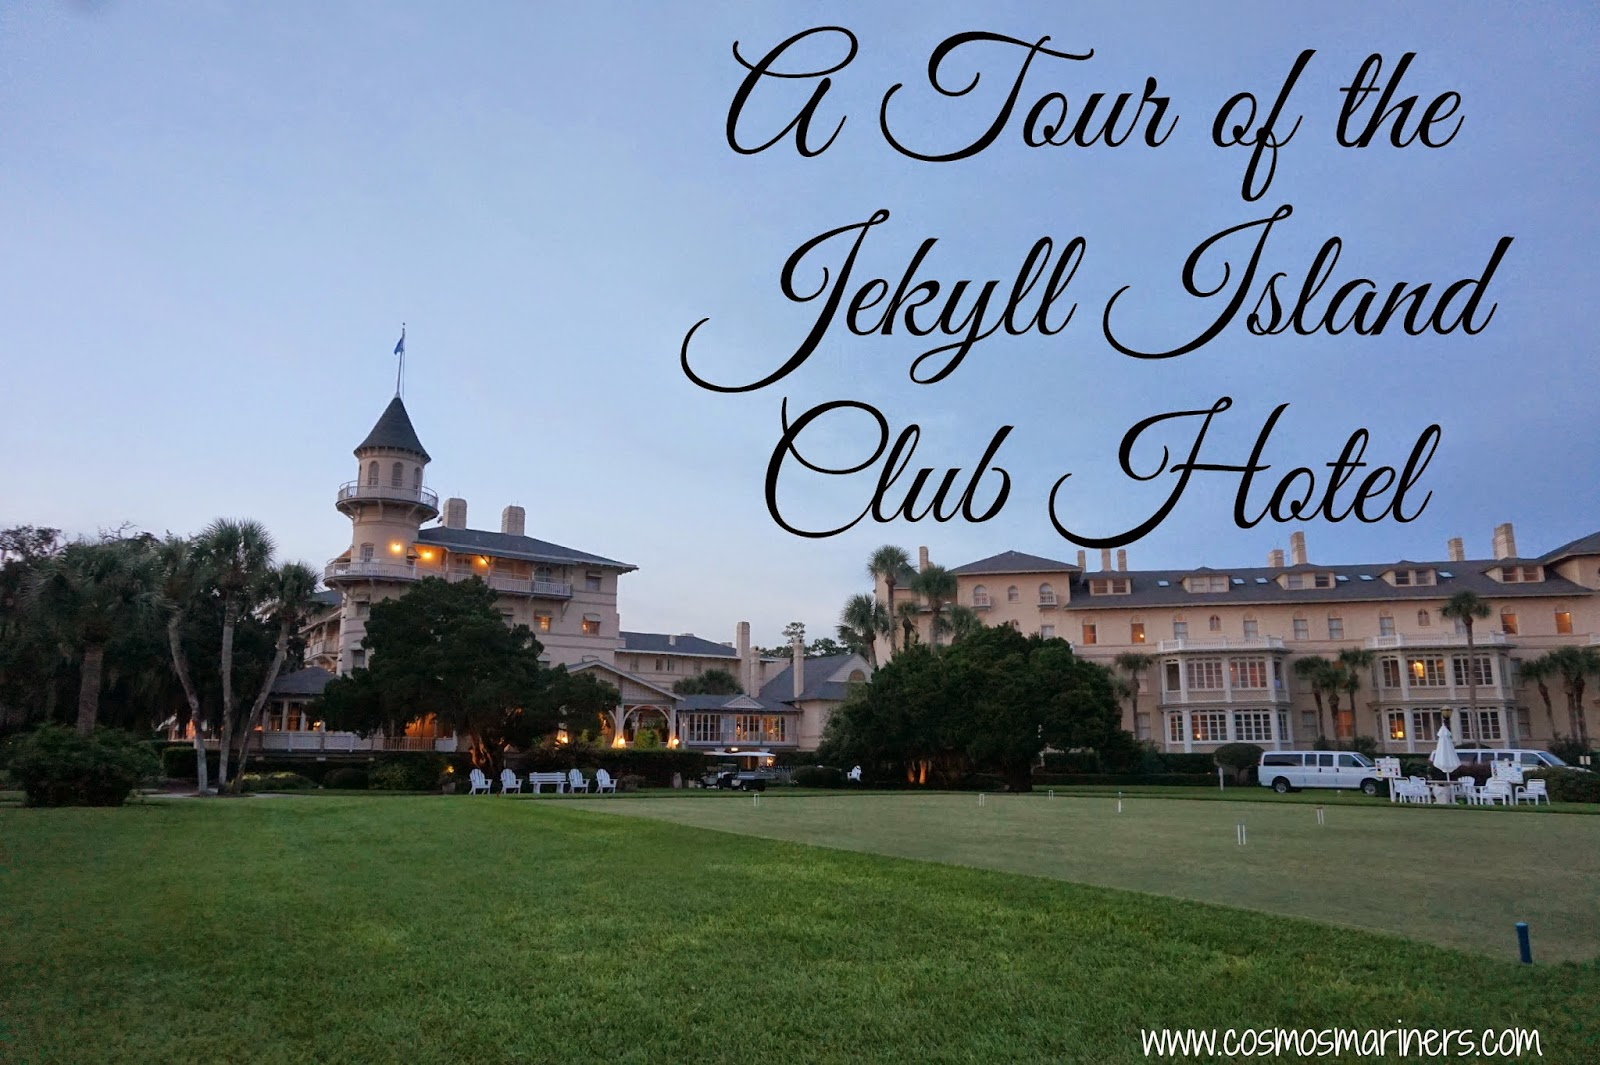 Jekyll Island Club Hotel: A Tour - Cosmos Mariners ...